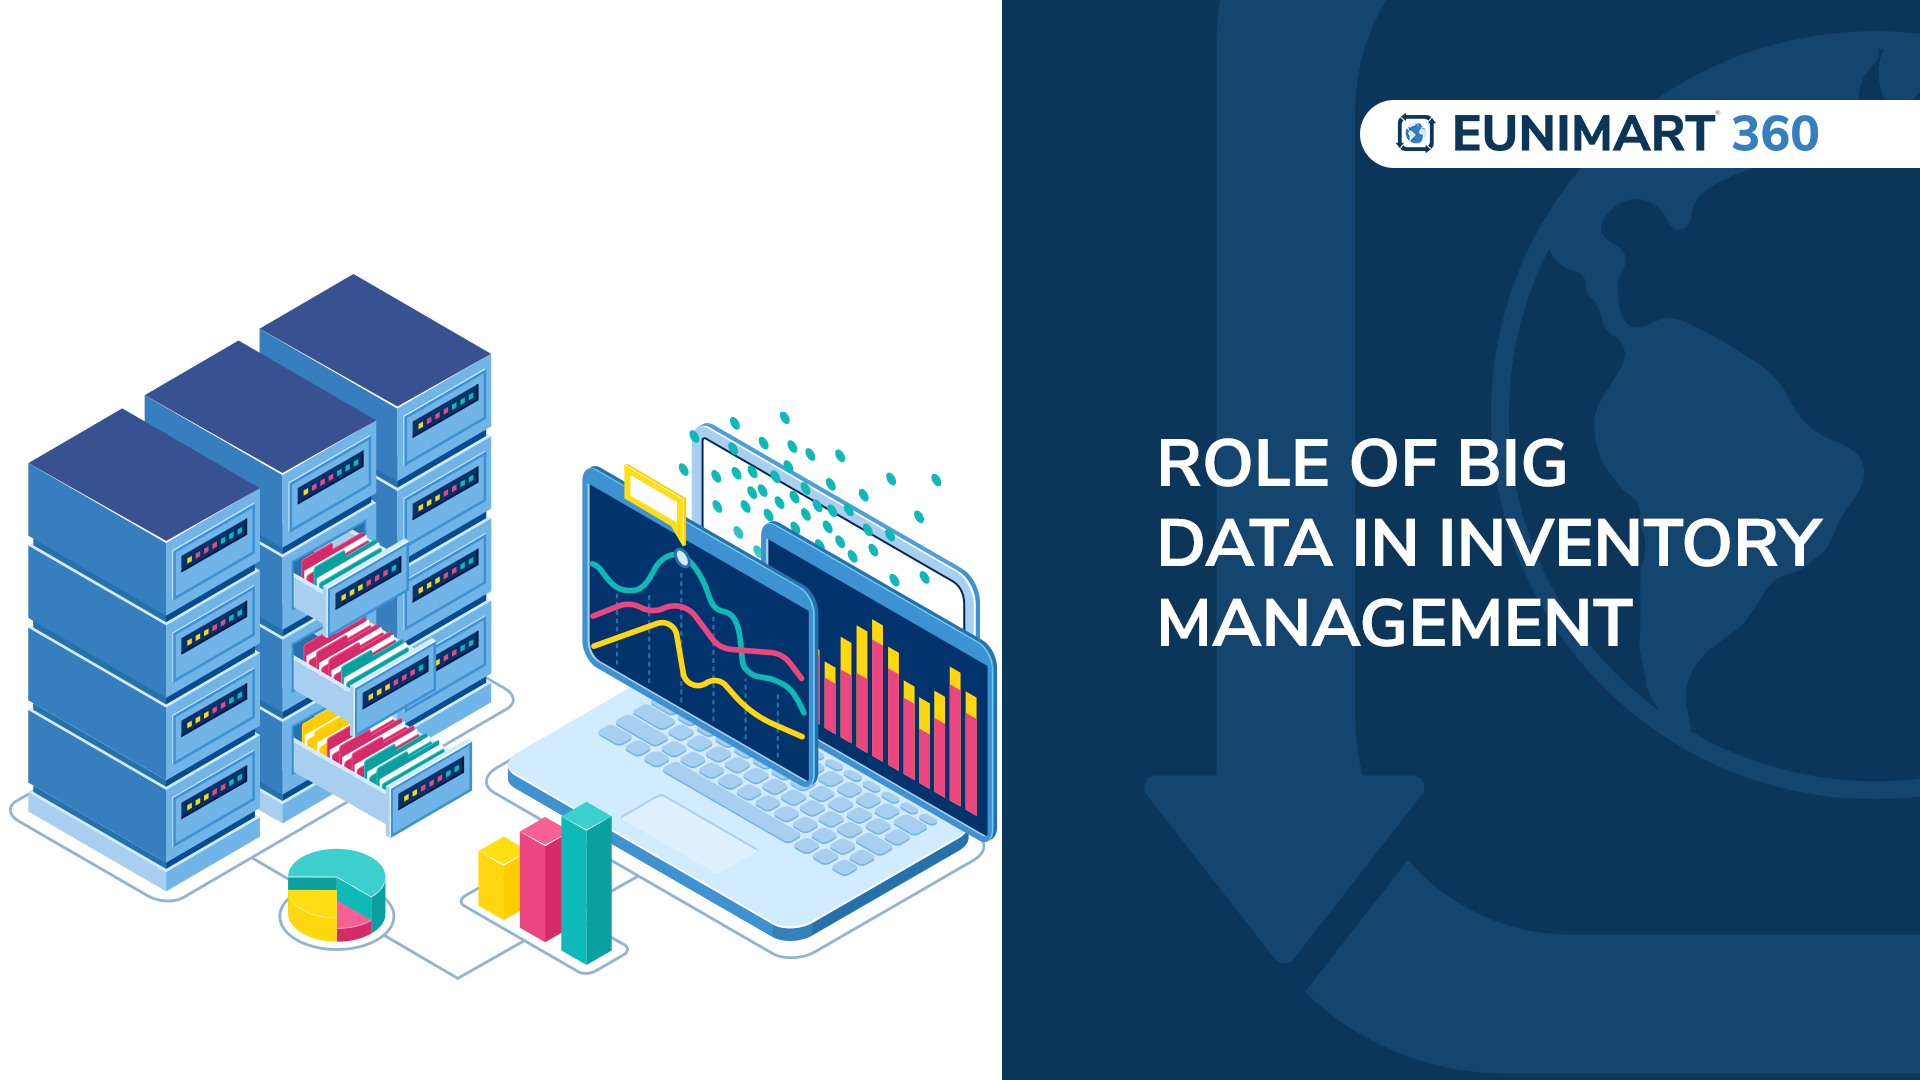 Role of Big Data in Inventory Management